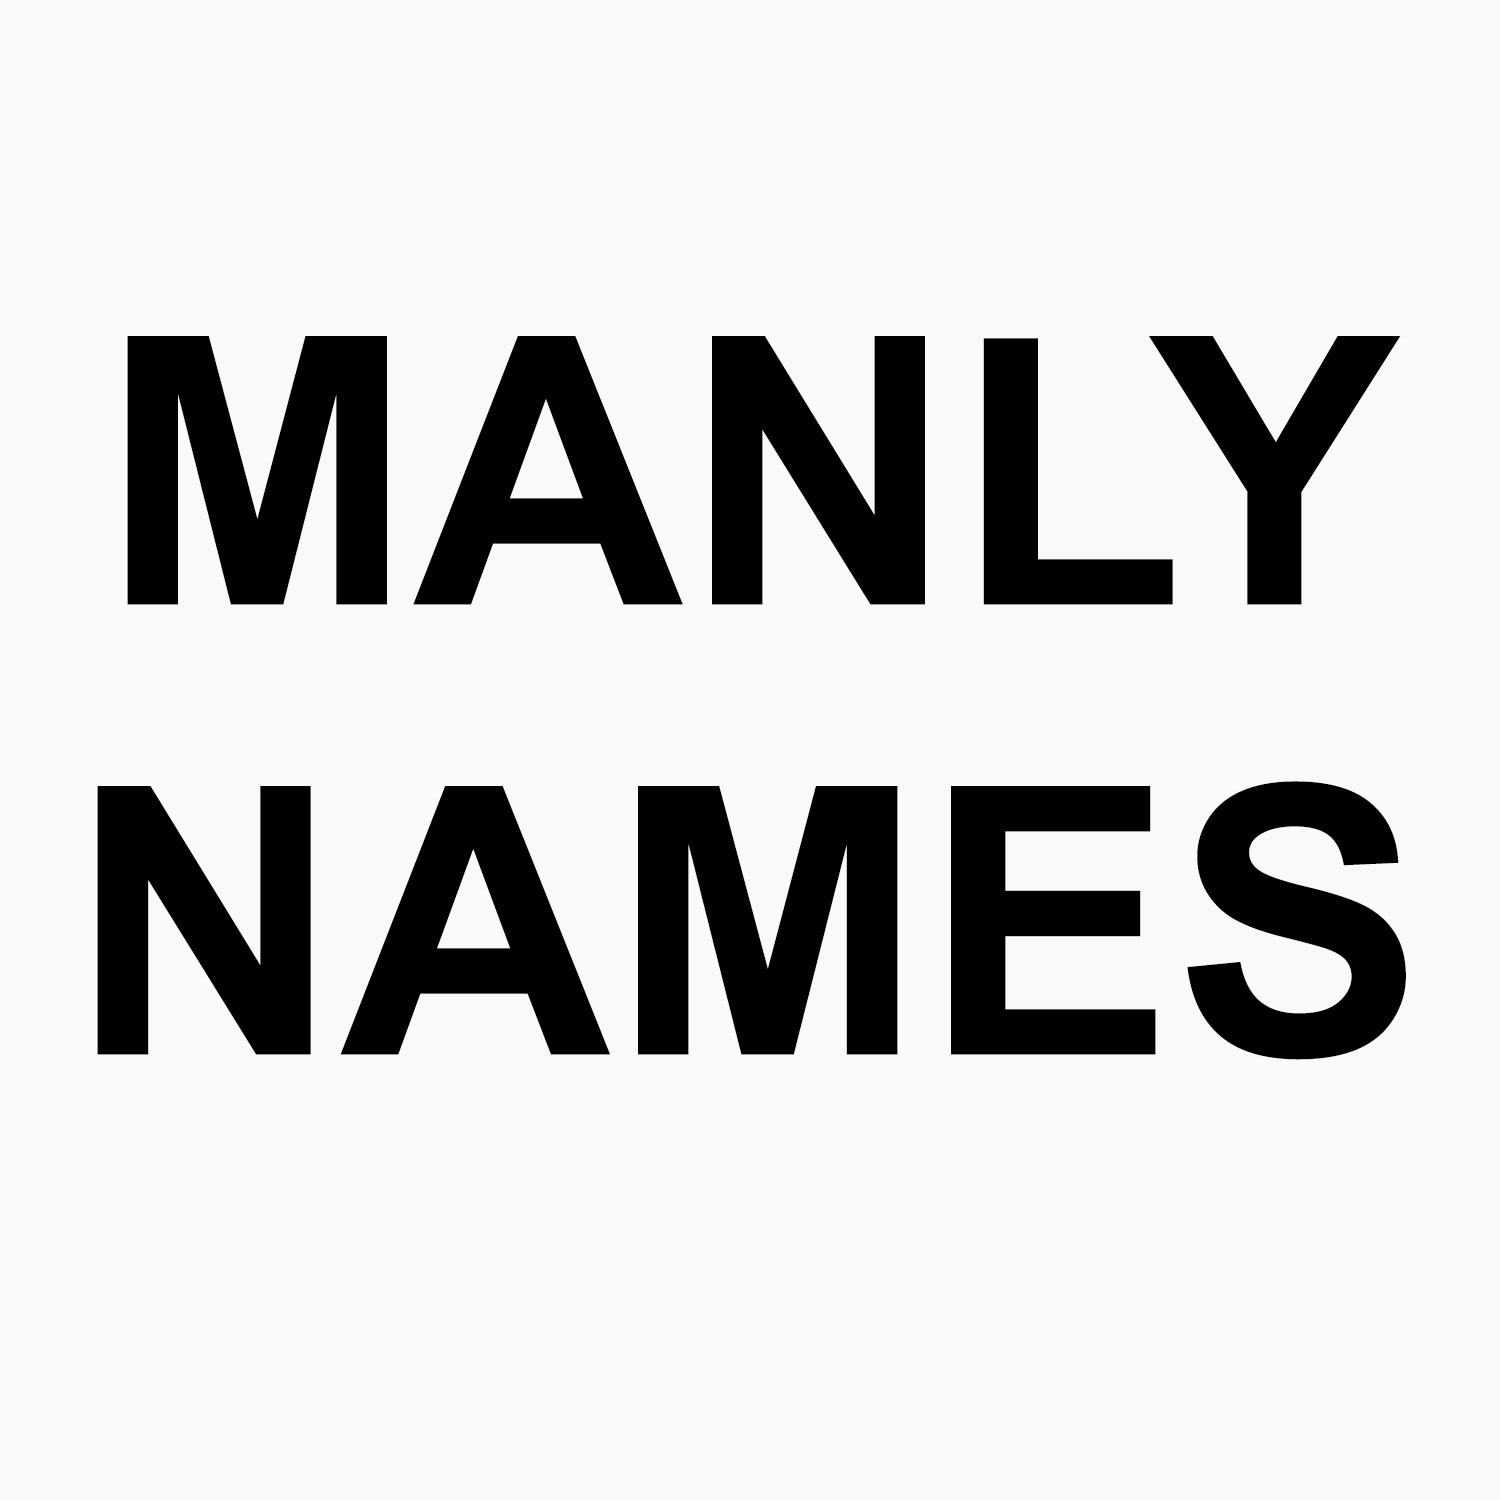 THE MANLY NAME GENERATOR